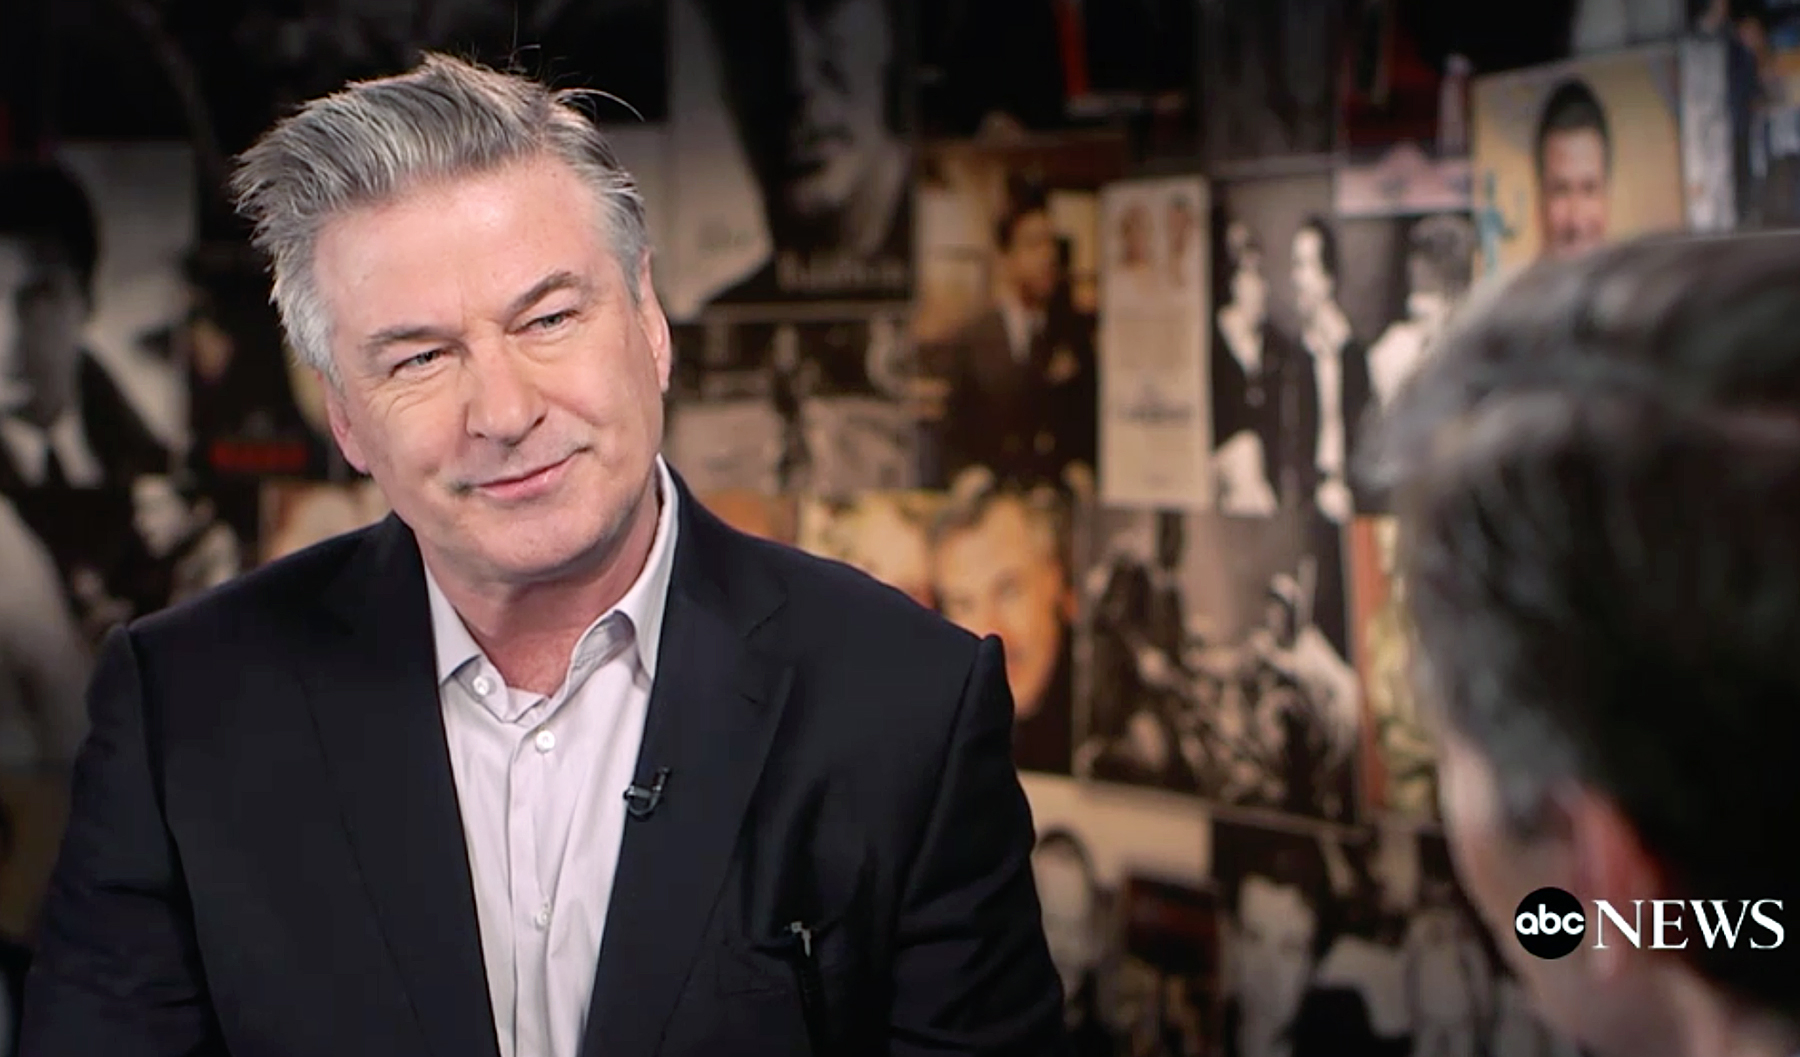 Alec Baldwin Good Morning America drug overdose substance abuse